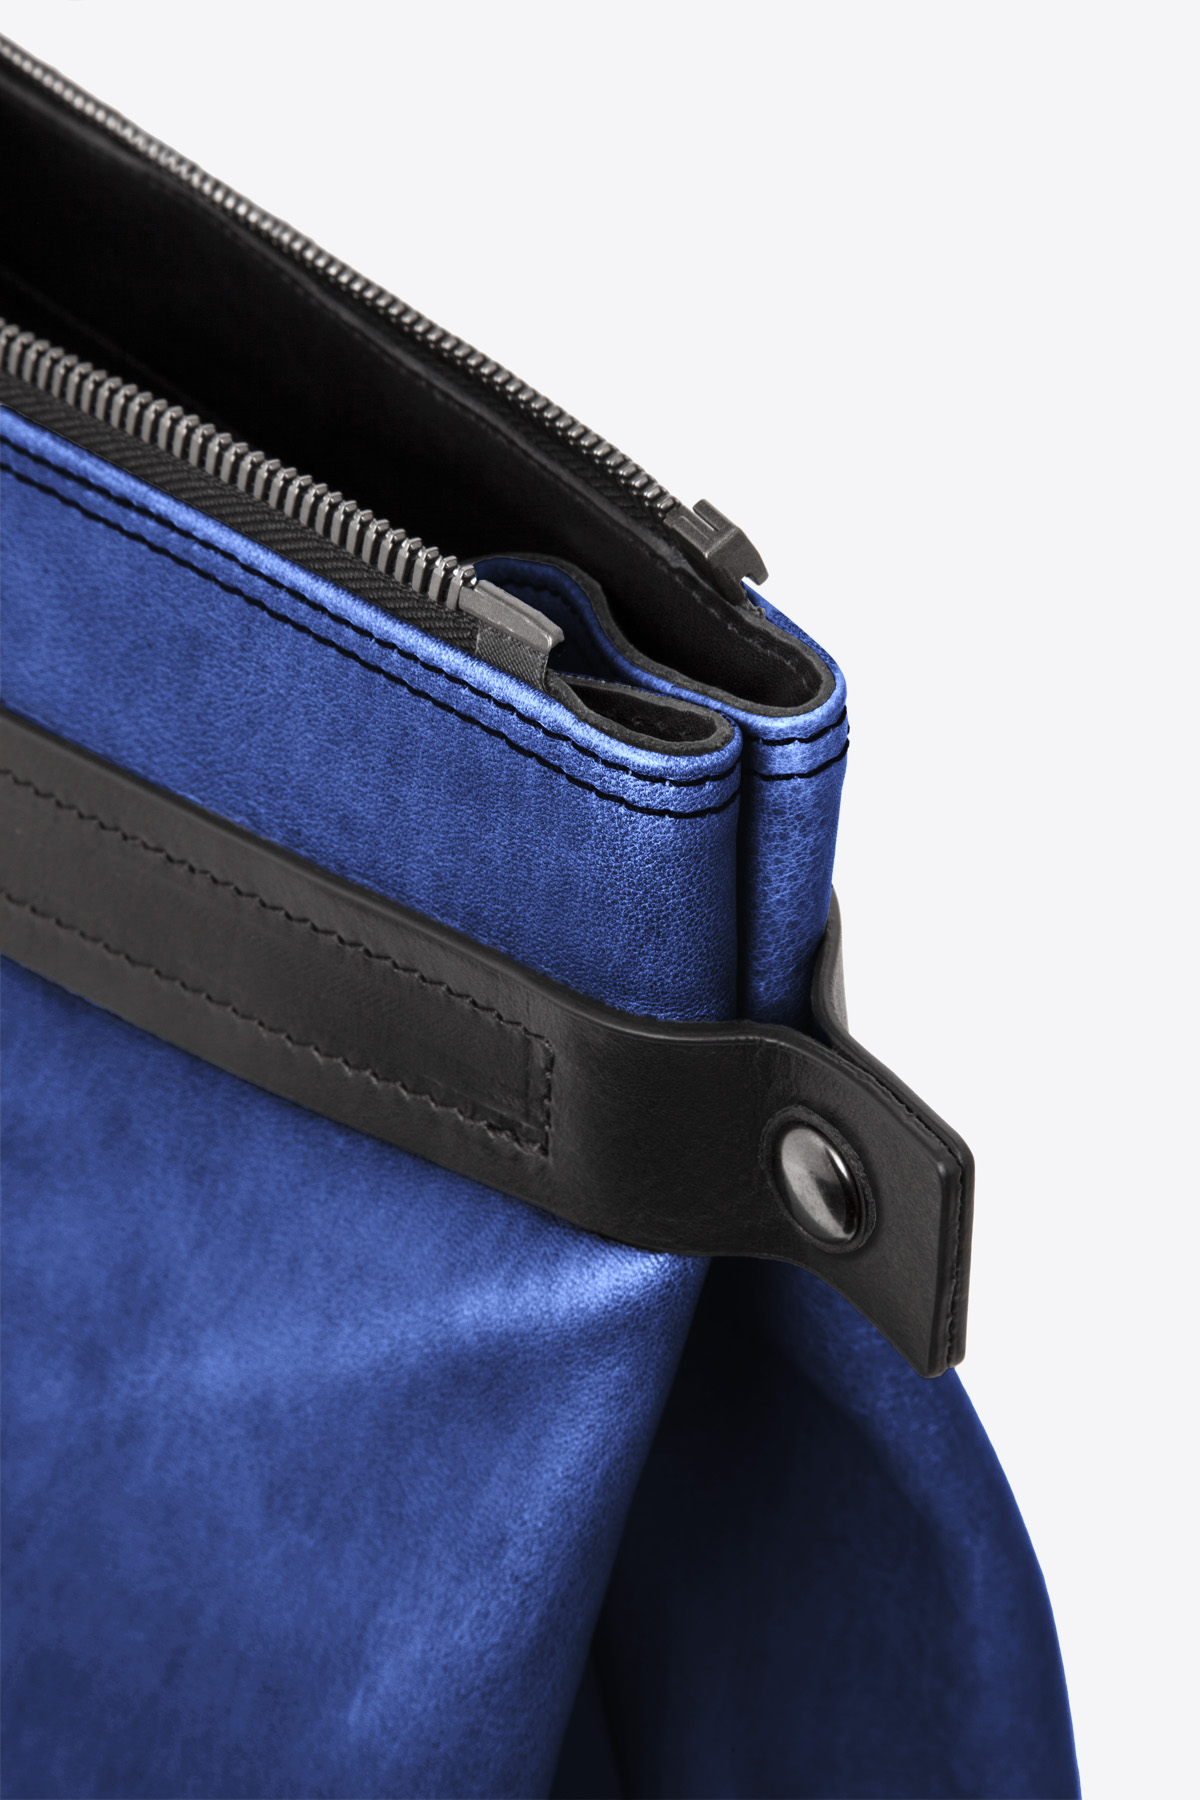 dclr007l-tote-a20-royalblue-detail